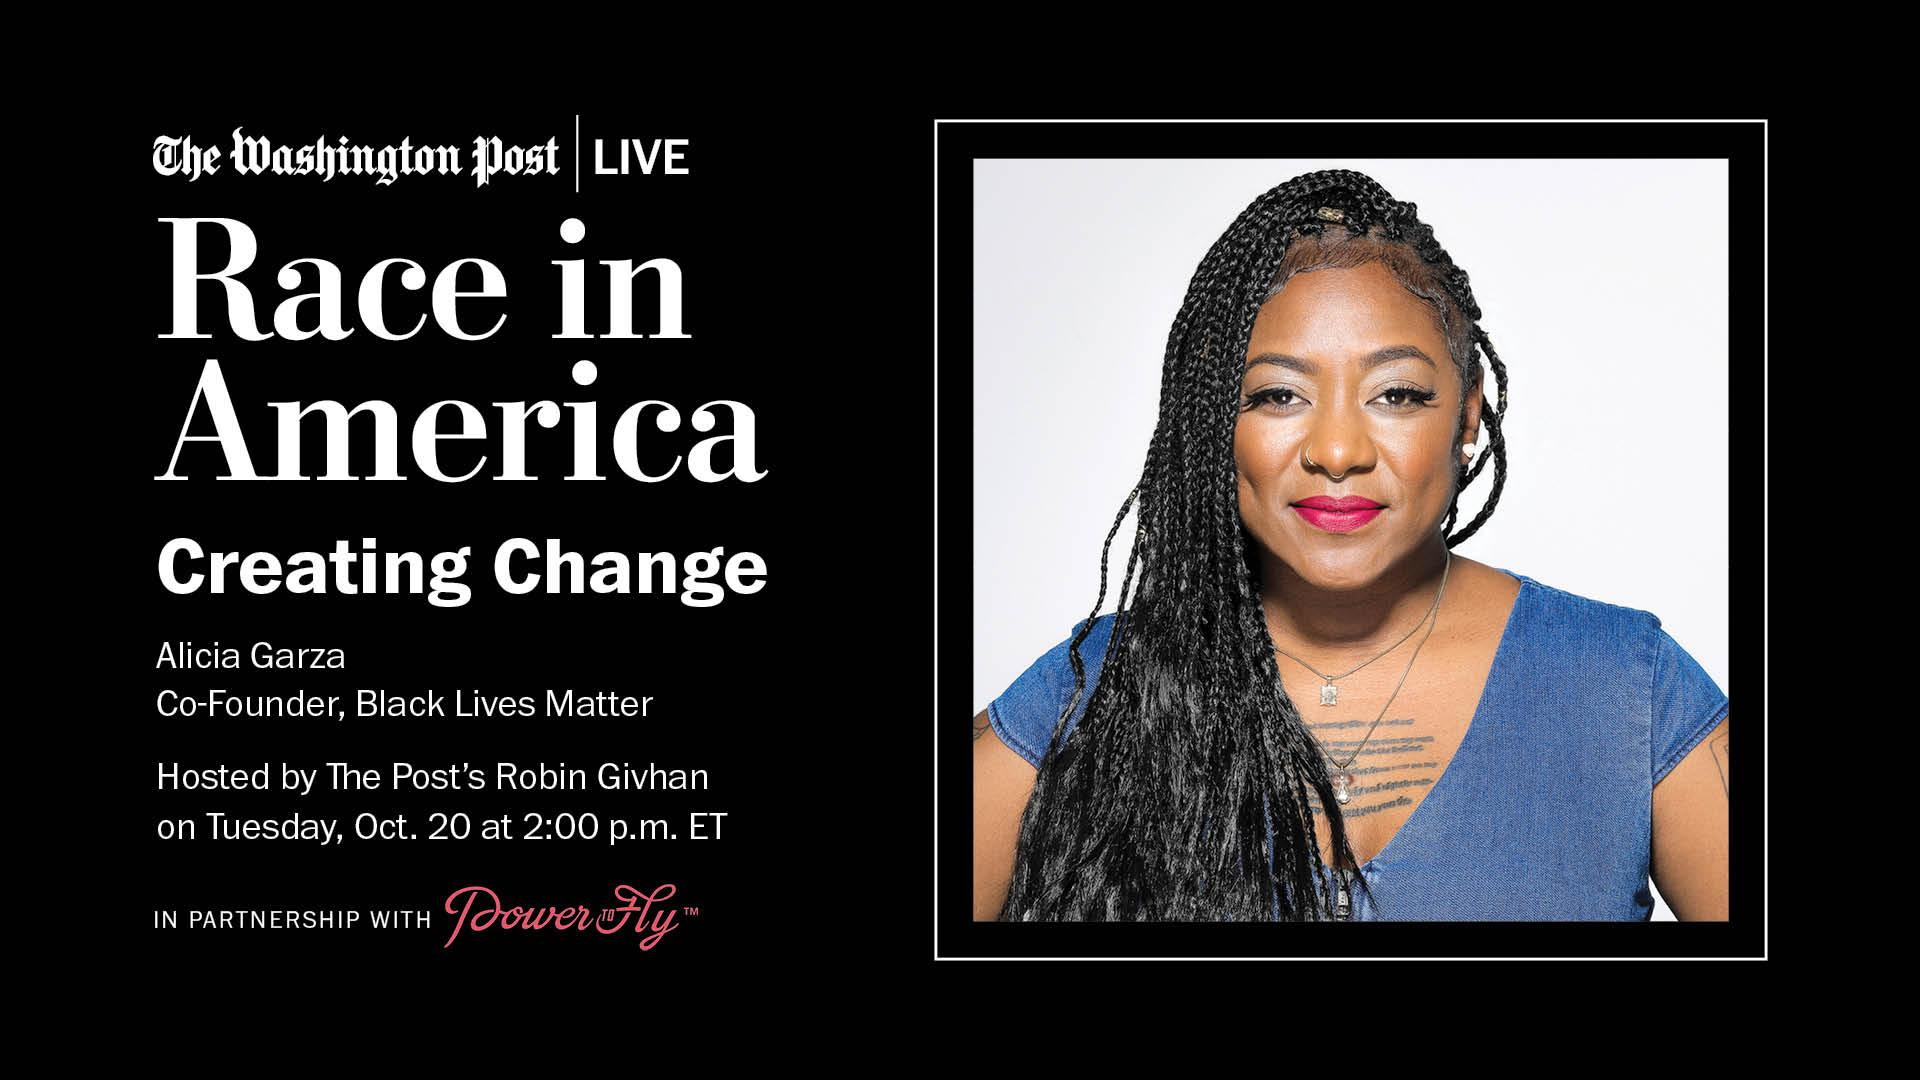 Race in America: Creating Change